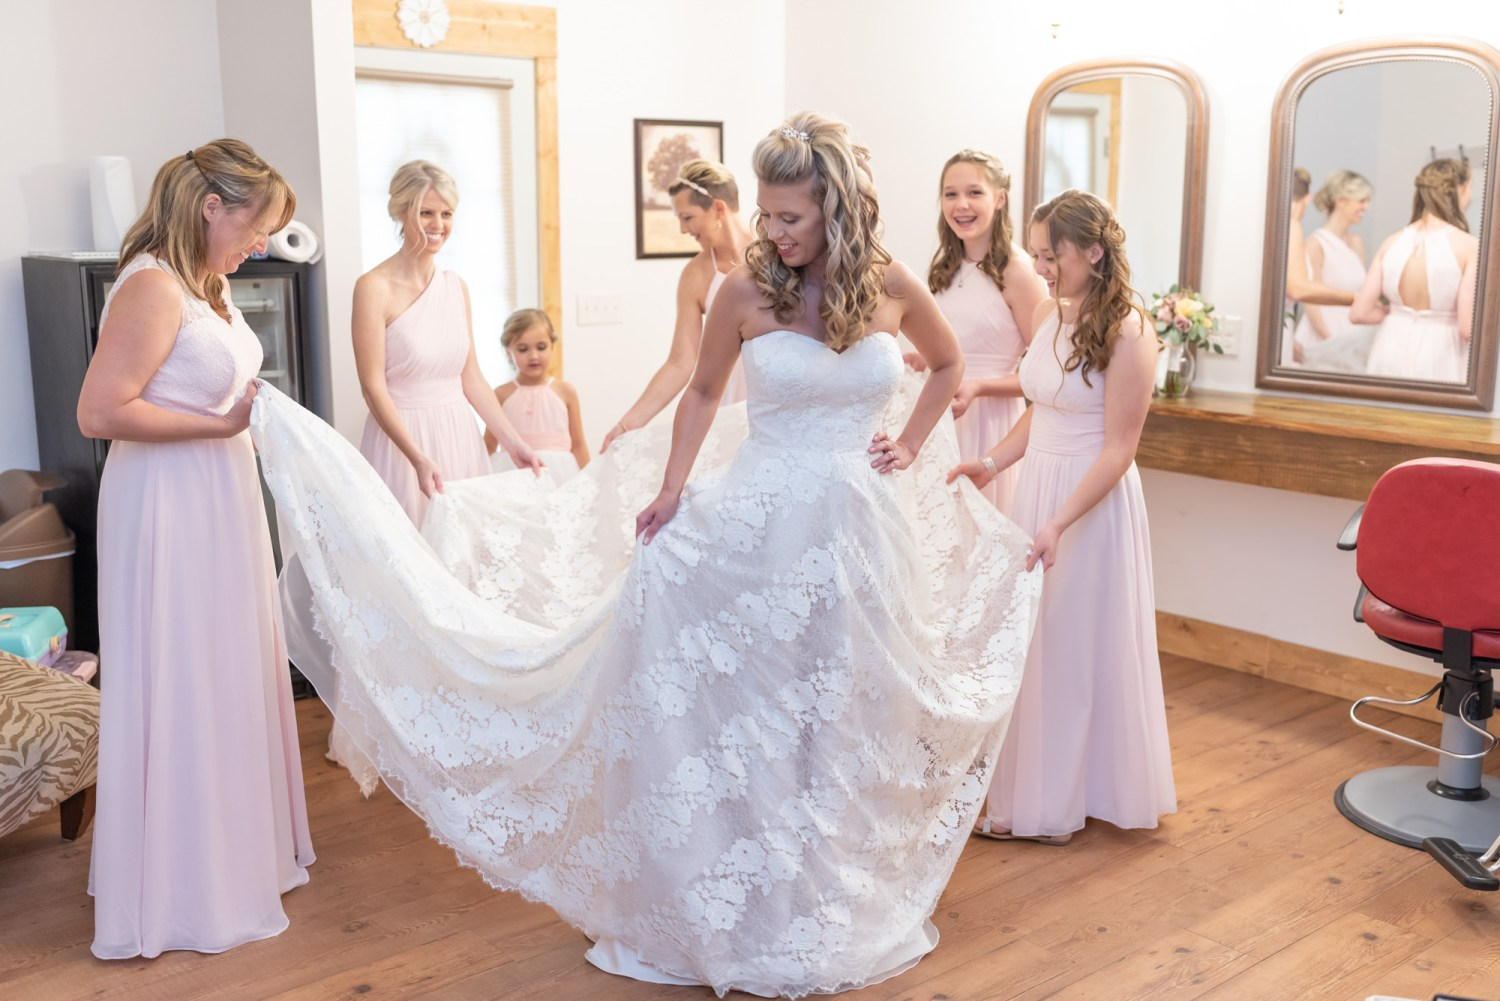 Bridesmaids helping with the brides dress - Wildhorse at Parker Farms